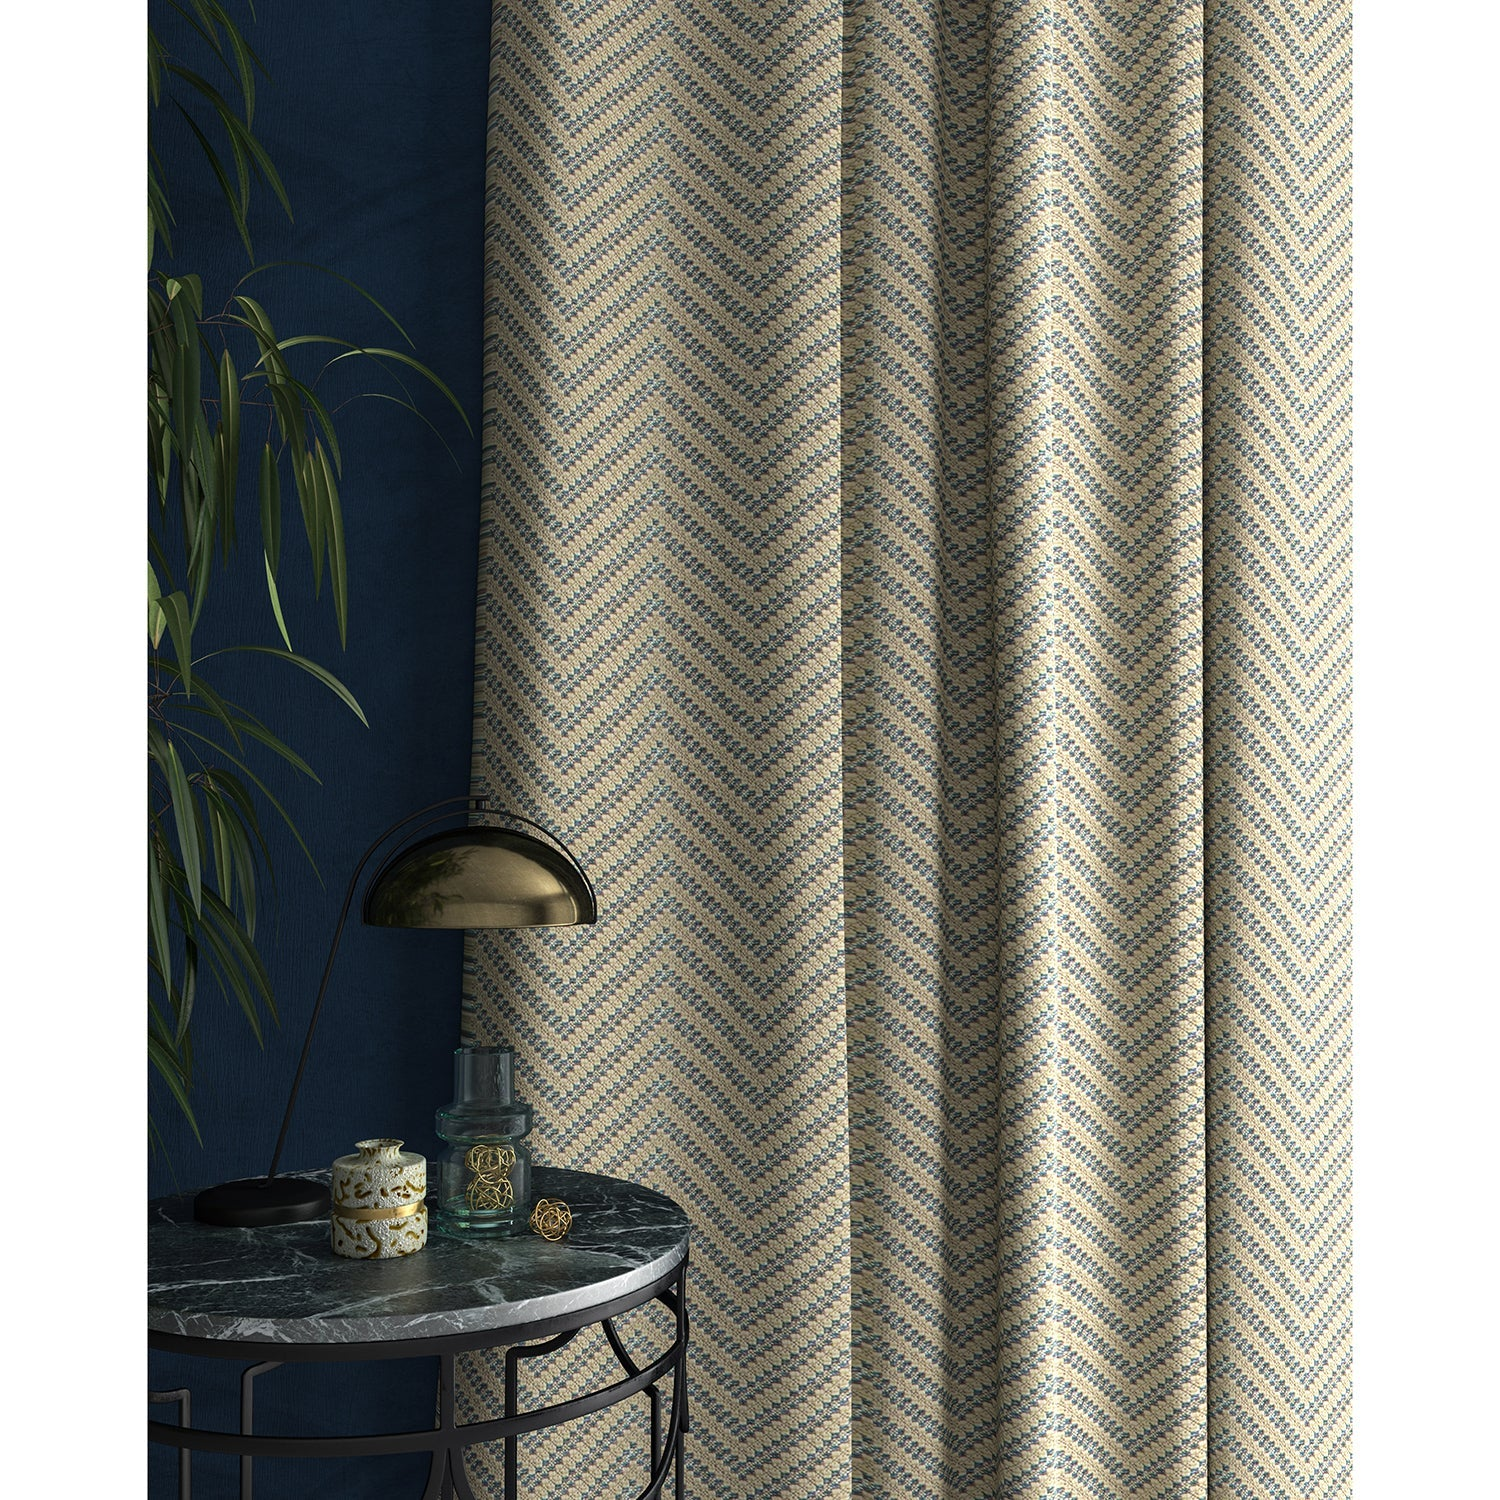 Curtain in a light blue and neutral herringbone weave fabric